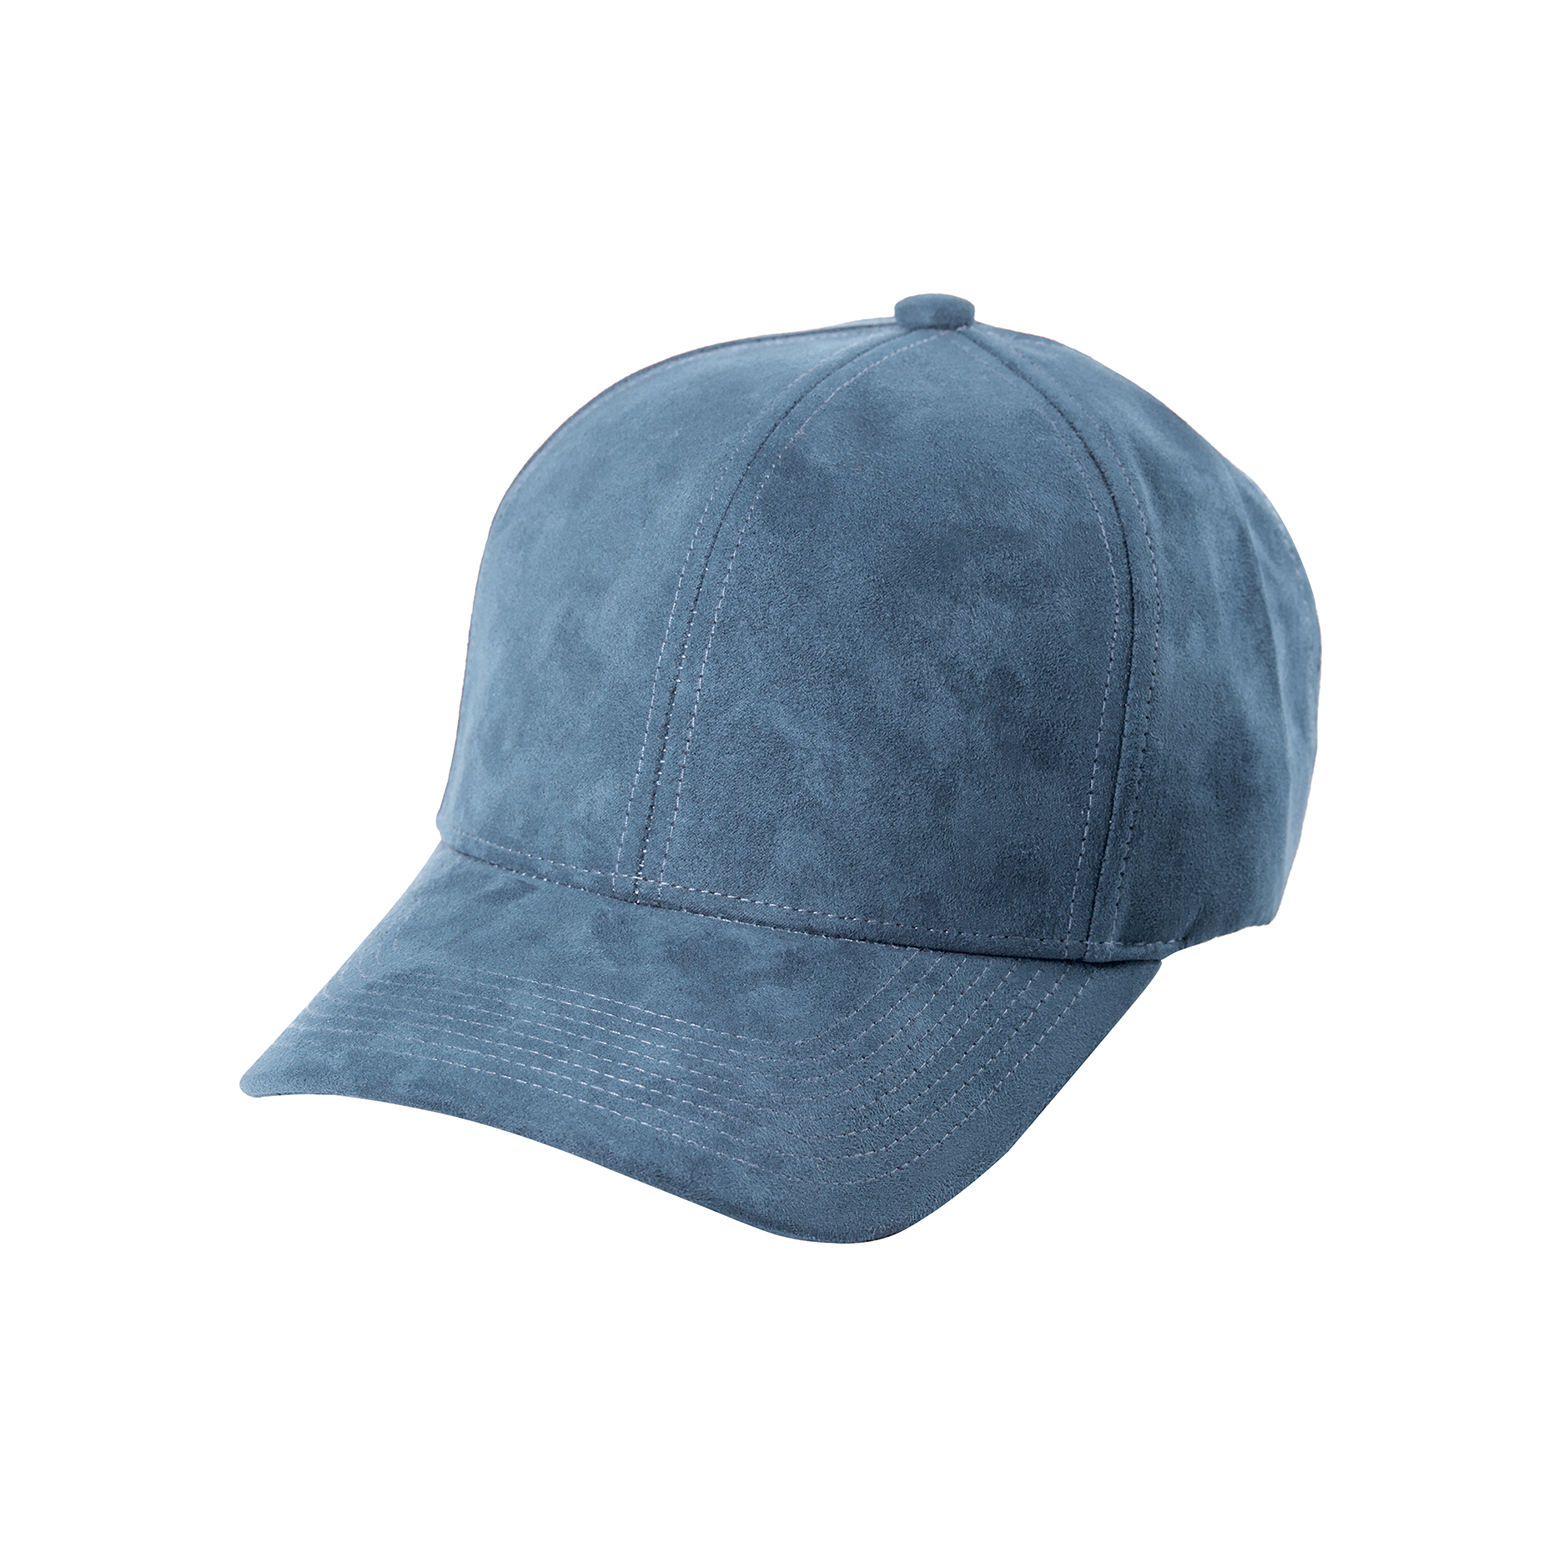 BASEBALL CAP SKY BLUE SUEDE FRONT SIDE